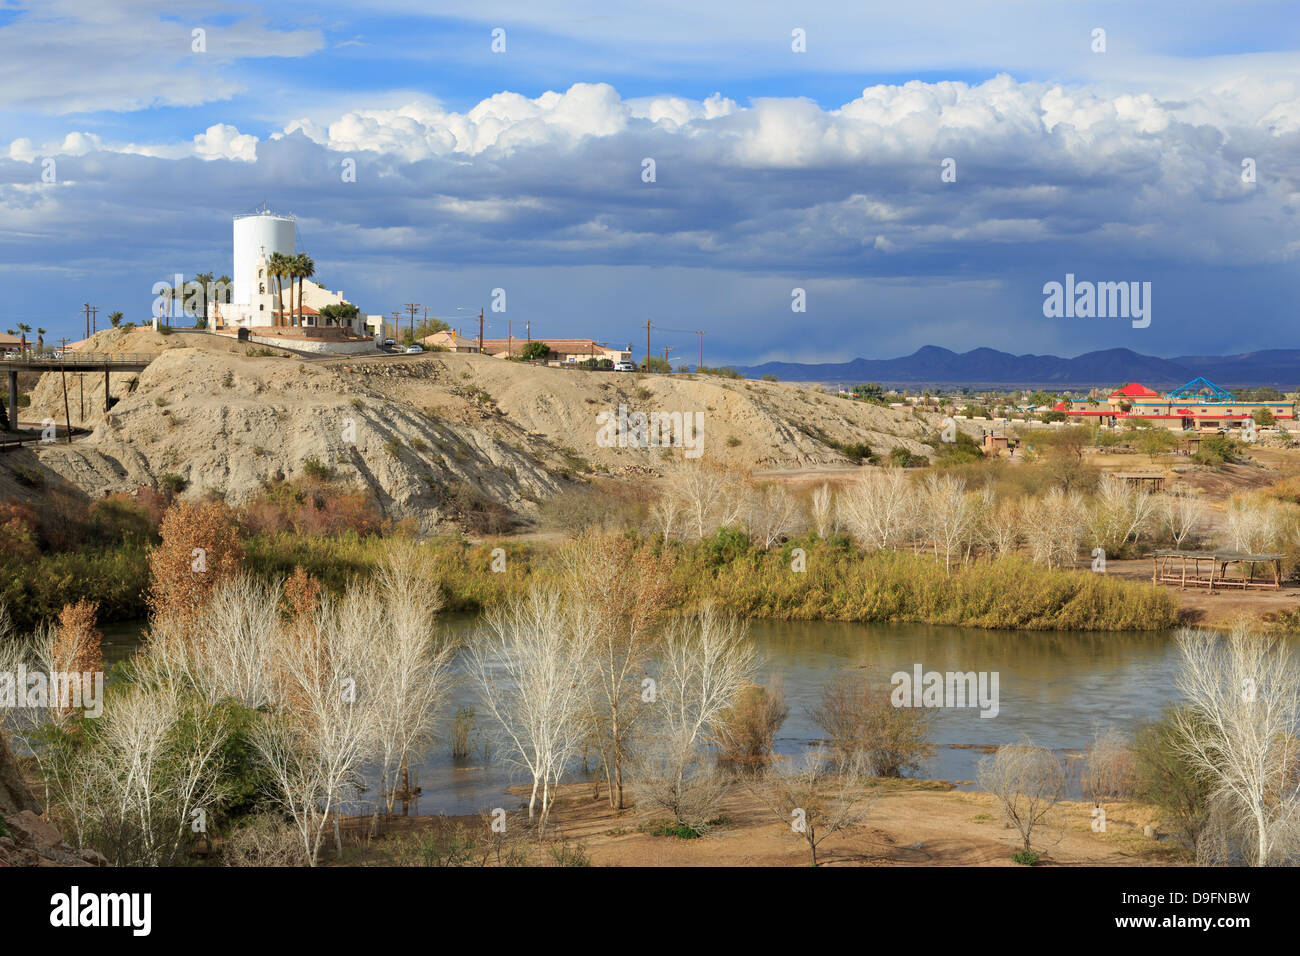 St. Thomas Indian Mission and Colorado River, Yuma, Arizona, USA - Stock Image